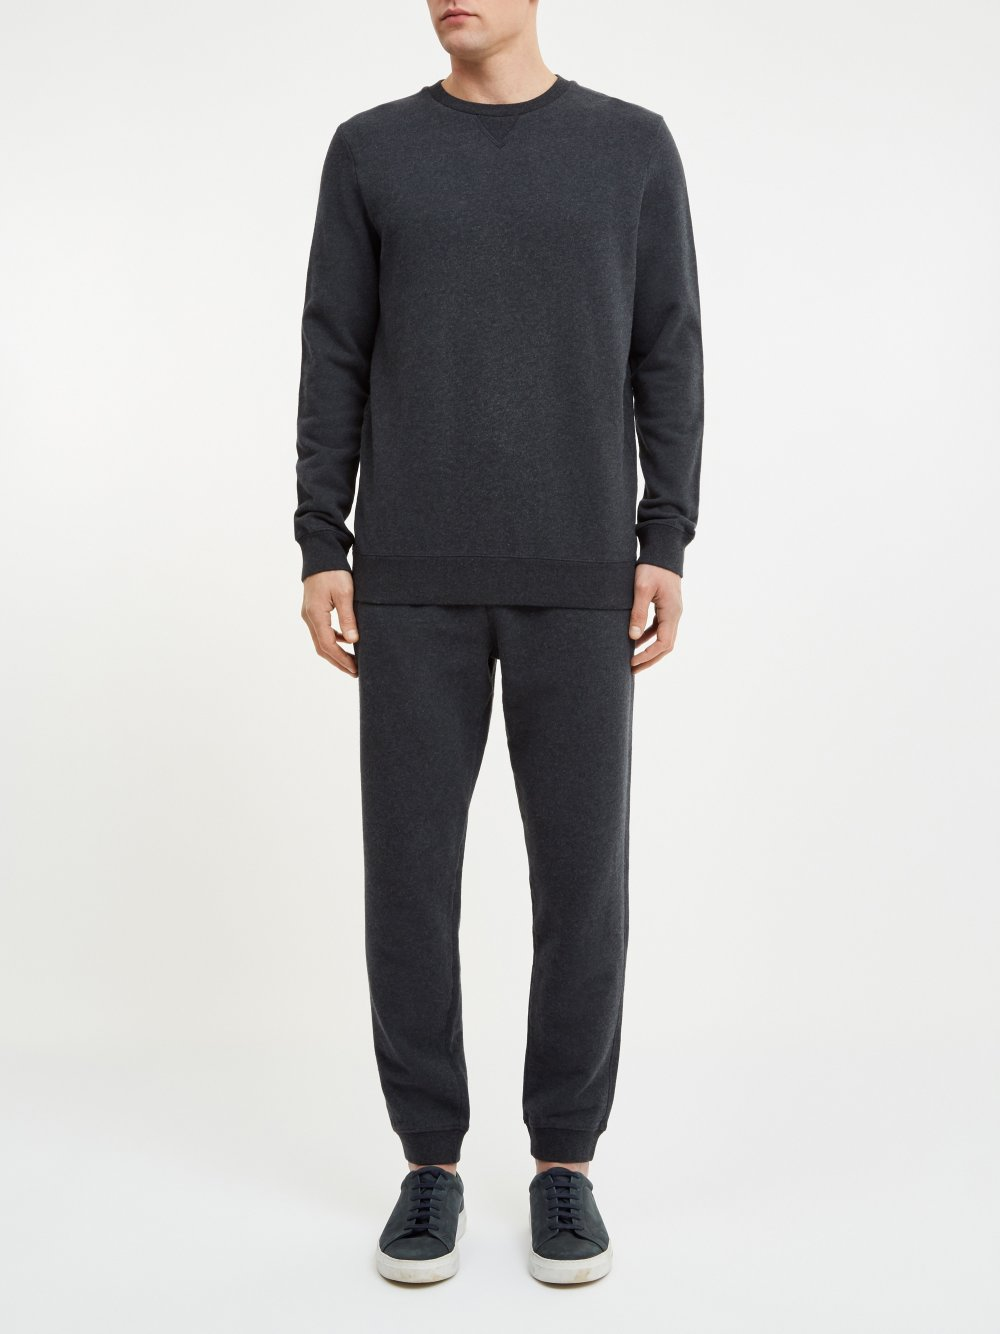 DEREK ROSE DEVON MEN'S SWEATPANTS - CHARCOAL